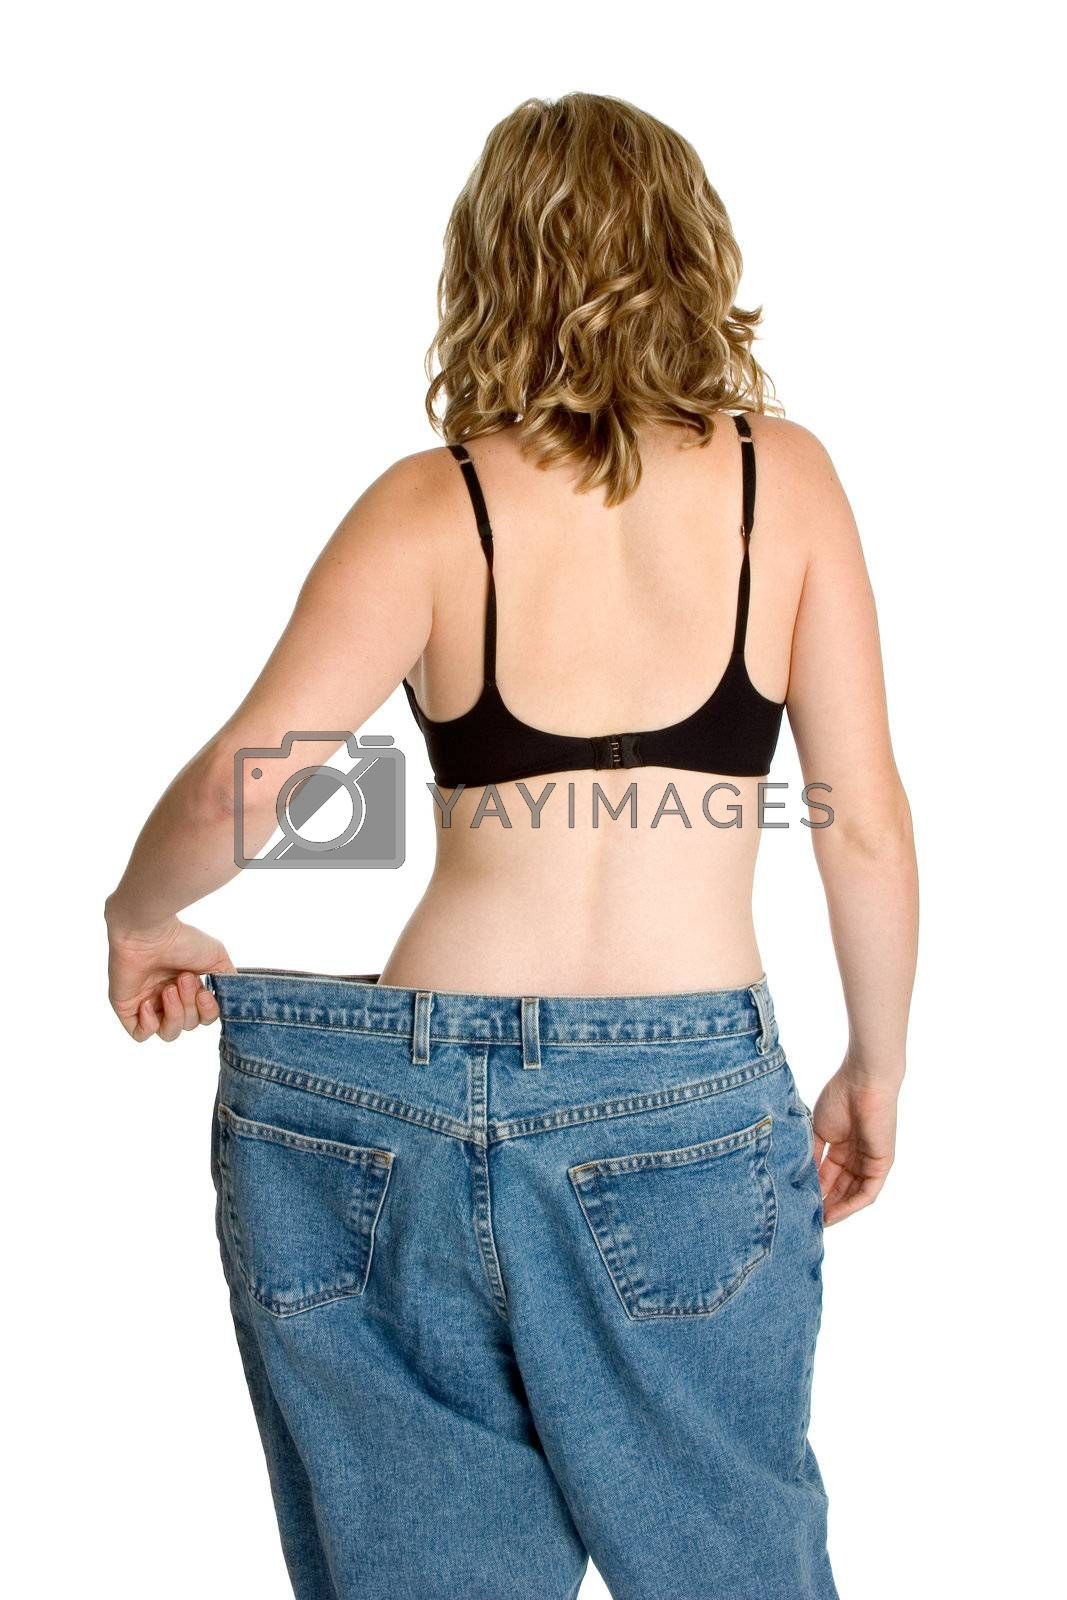 Isolated successful weight loss woman